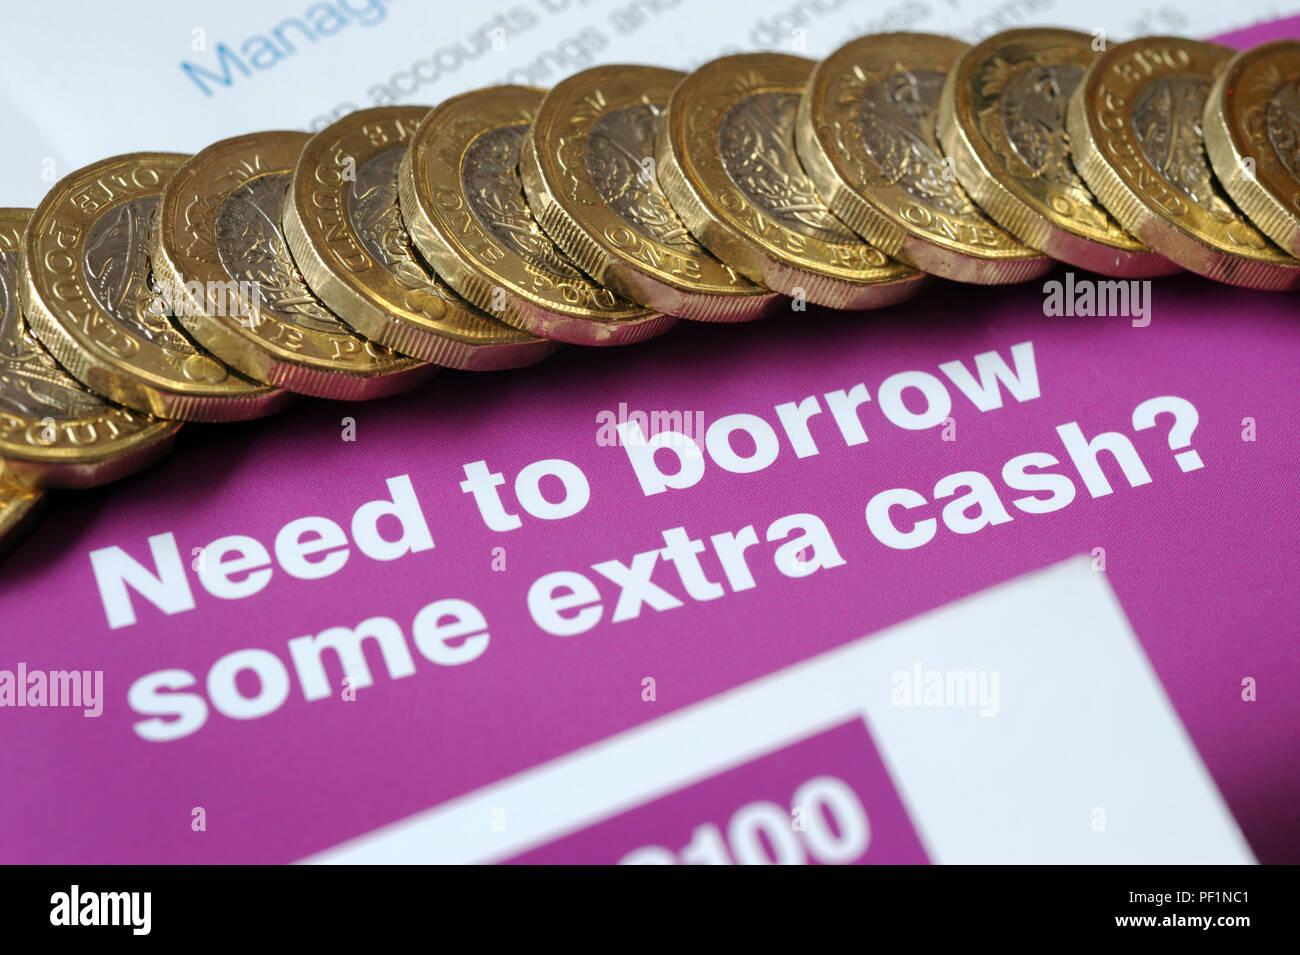 loan-leaflets-with-one-pound-coins-re-borrowing-short-term-loans-payday-apr-extra-cash-uk-PF1NC1.jpg?profile=RESIZE_400x